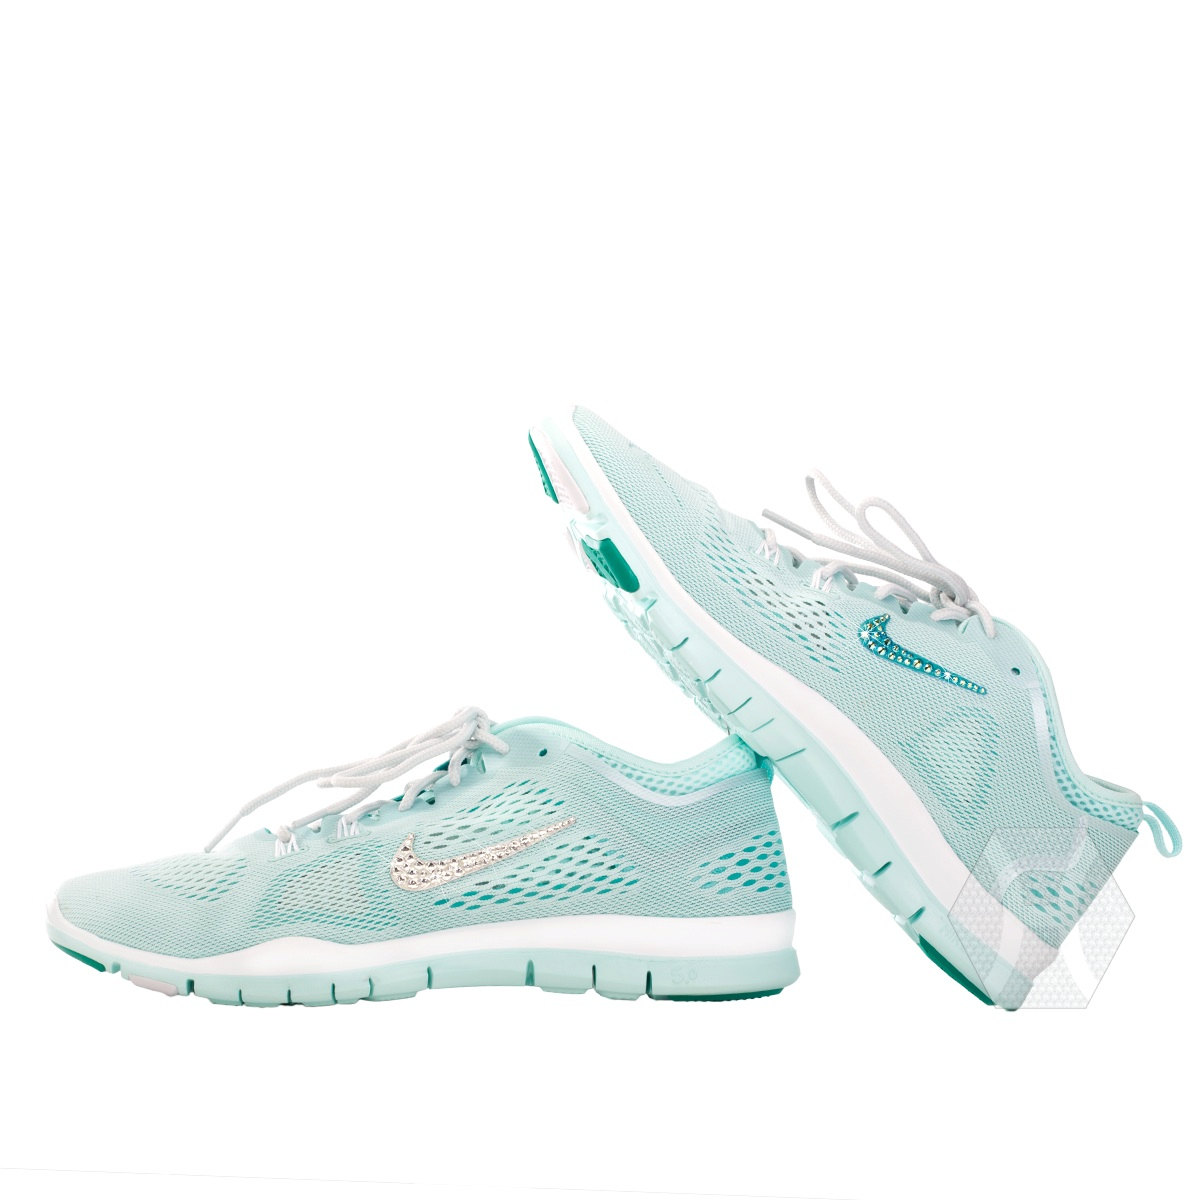 Nike Free 5.0 TR Fit 4 Breath in Mint Candy White TurboGreen almost ... 32da09487f16